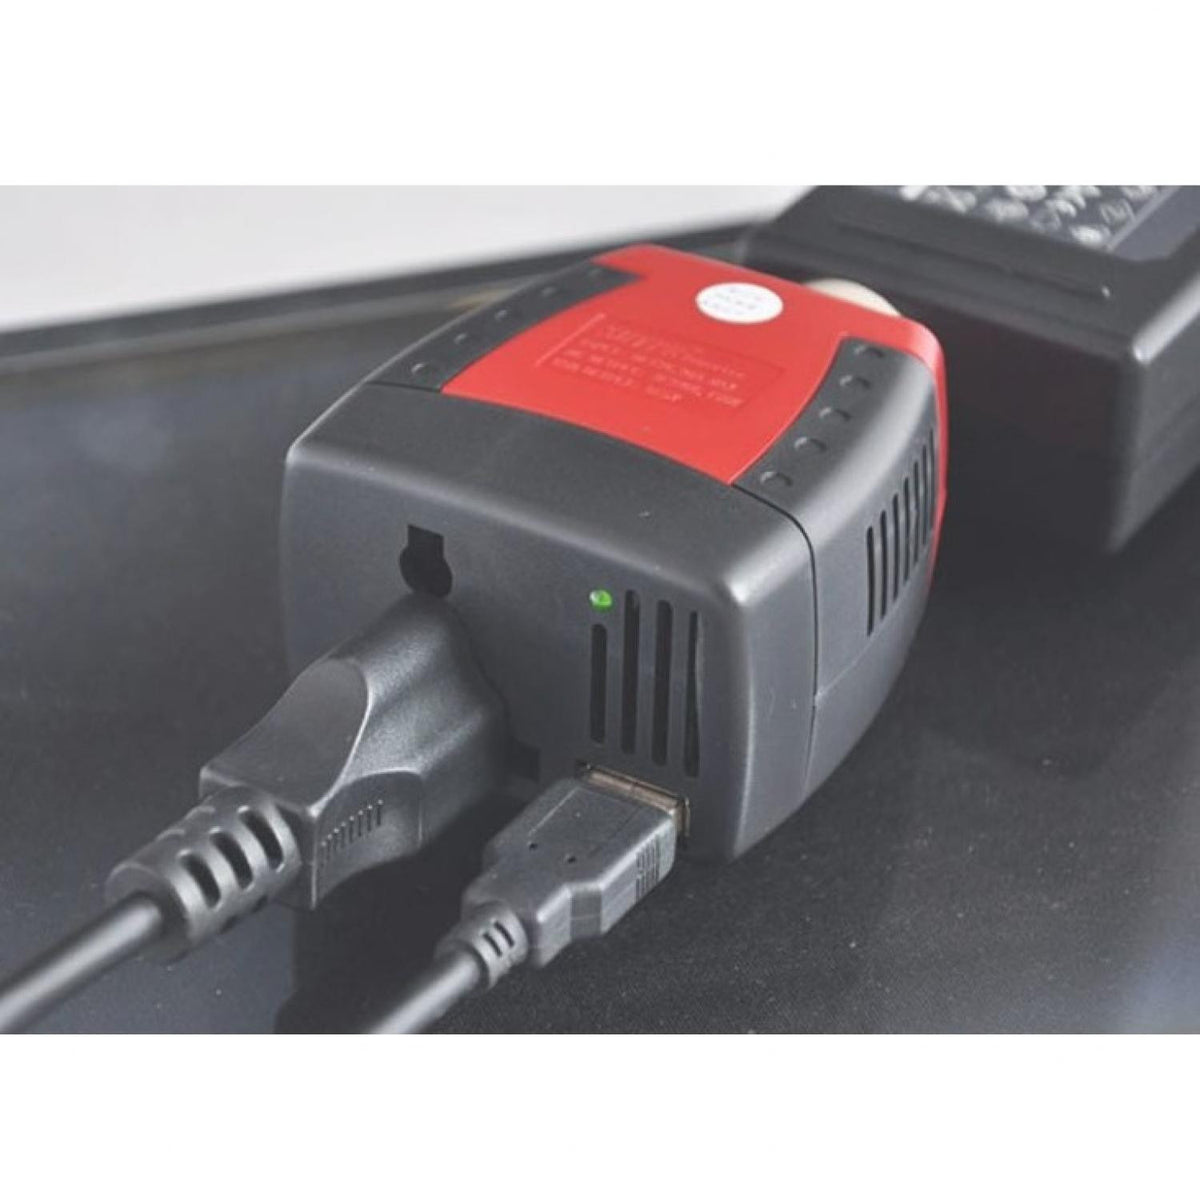 CAR POWER INVERTER - CHARGER LAPTOP DI MOBIL